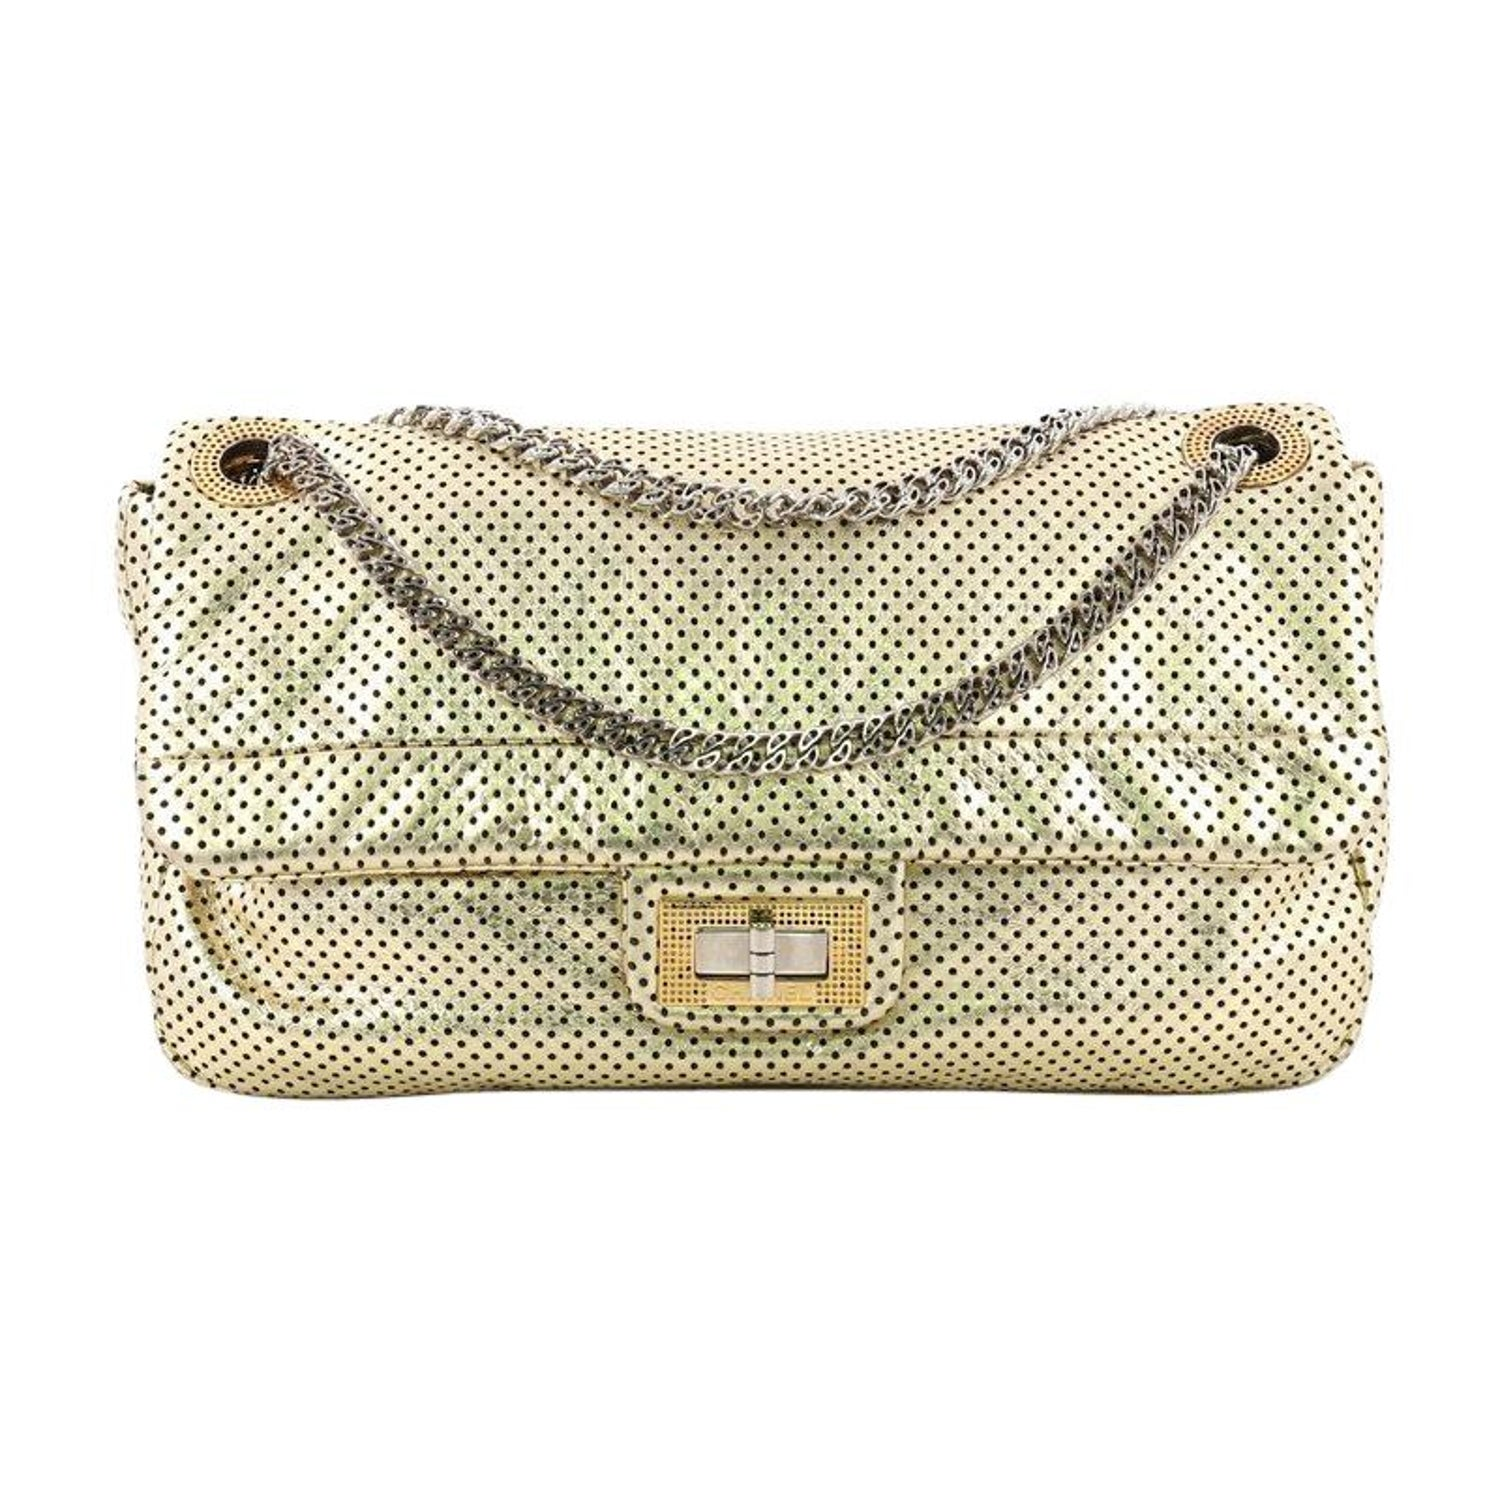 a8bf57776967 Chanel Drill Flap Bag Perforated Leather Medium at 1stdibs